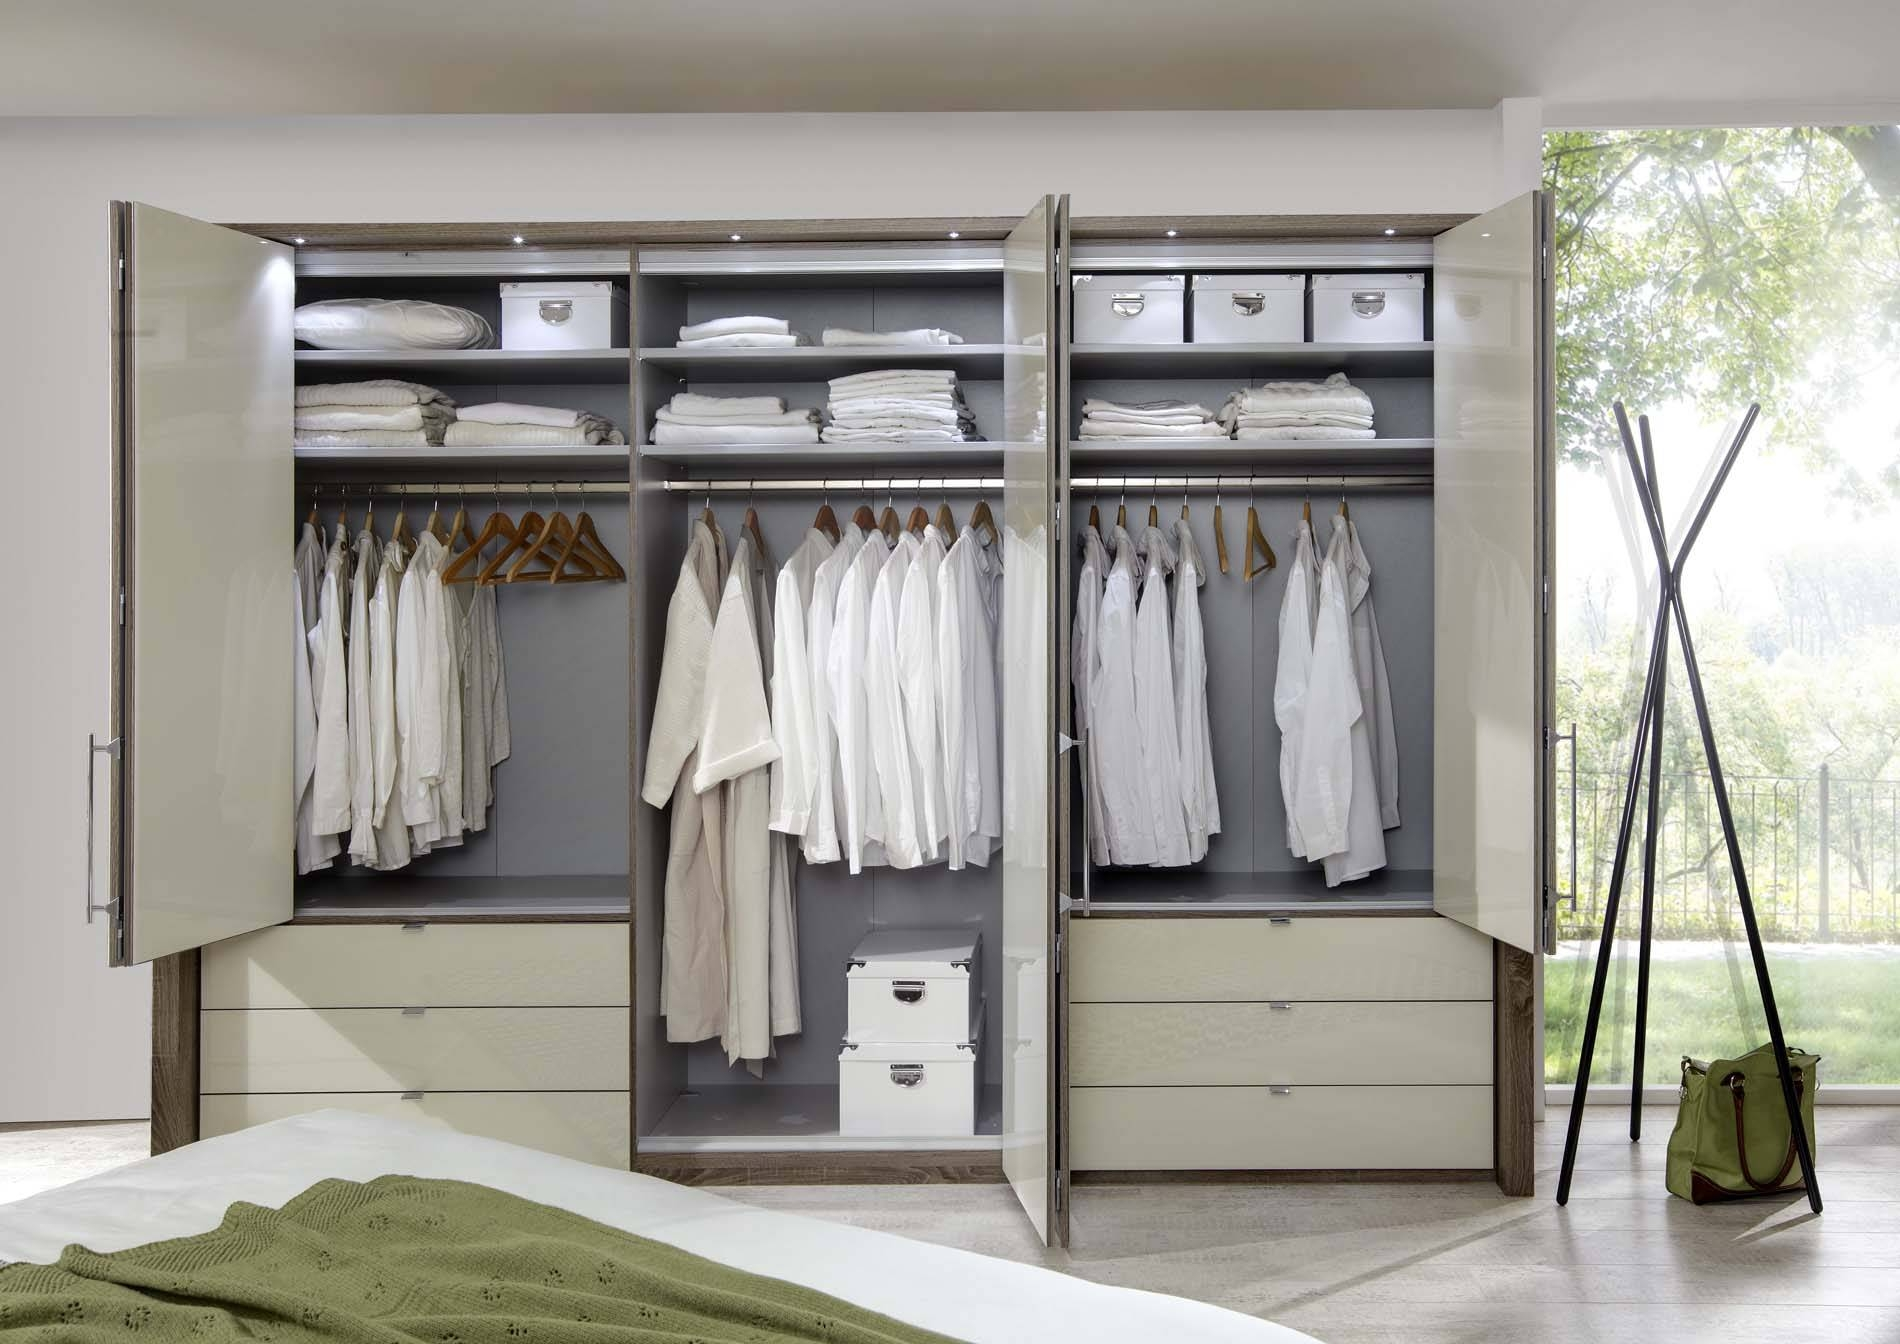 Kensington 6 Door 6 Drawer Wardrobe | Crendon Beds regarding 6 Door Wardrobes Bedroom Furniture (Image 11 of 15)